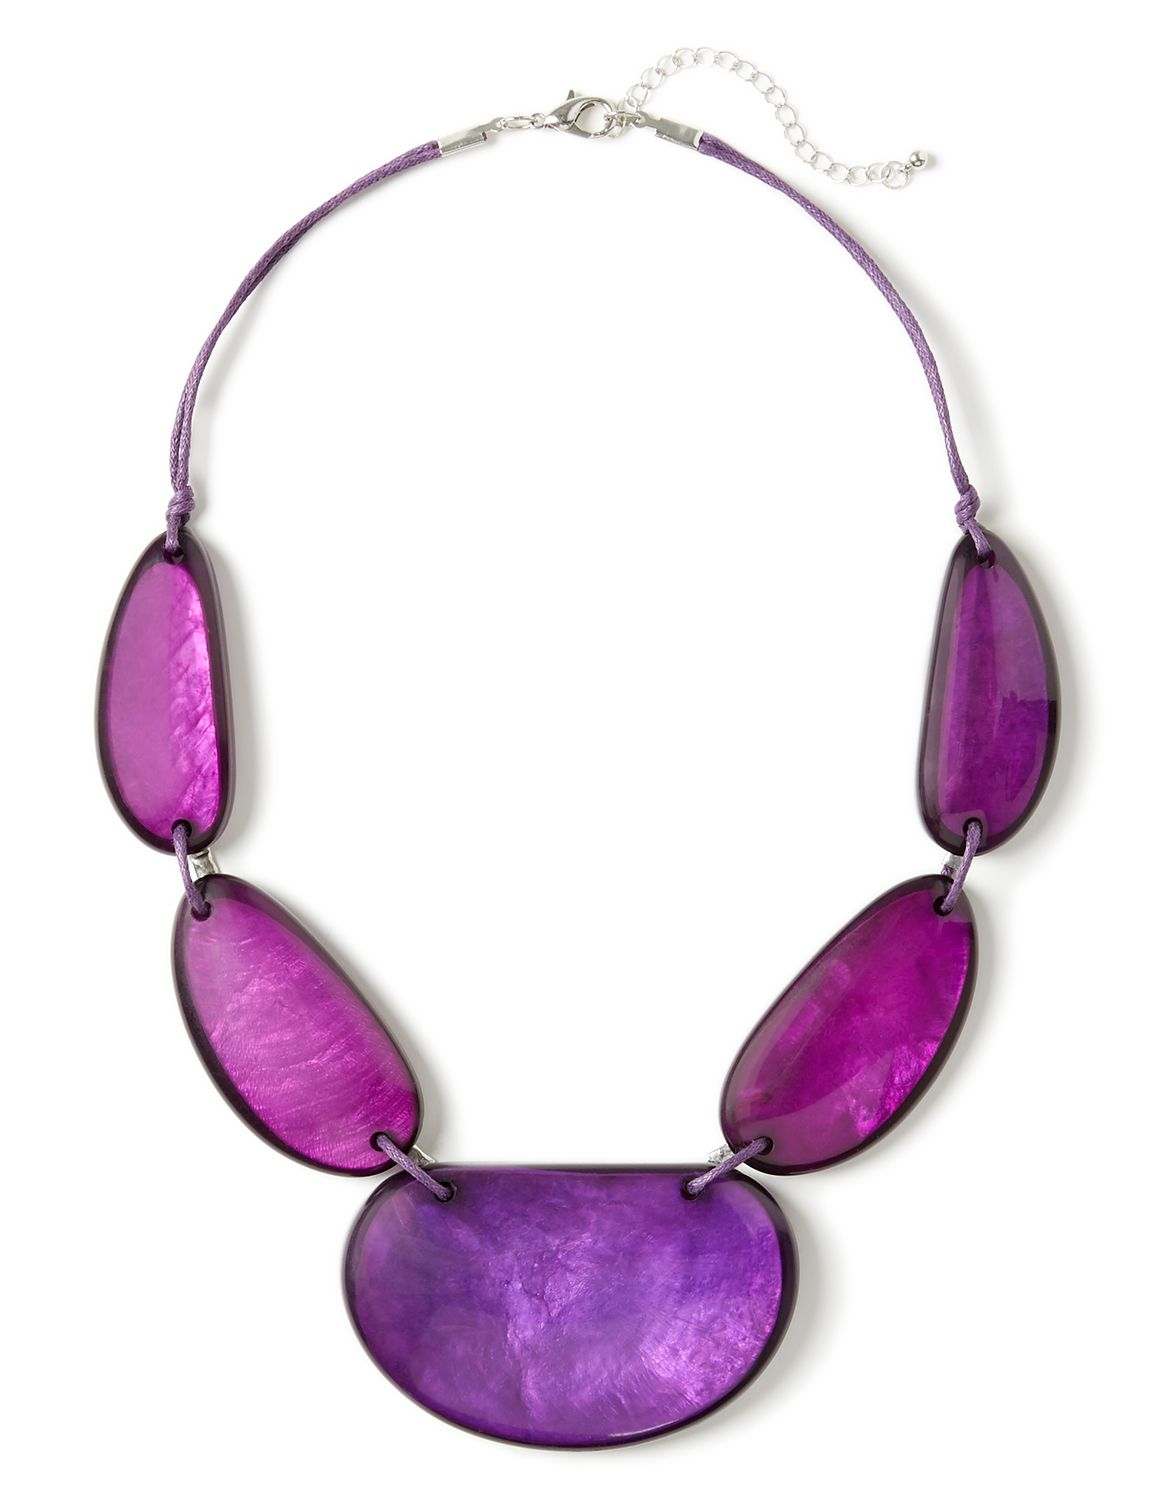 Skyline Drive Necklace LM Short limabean purp NK 723414NP MP-300097708